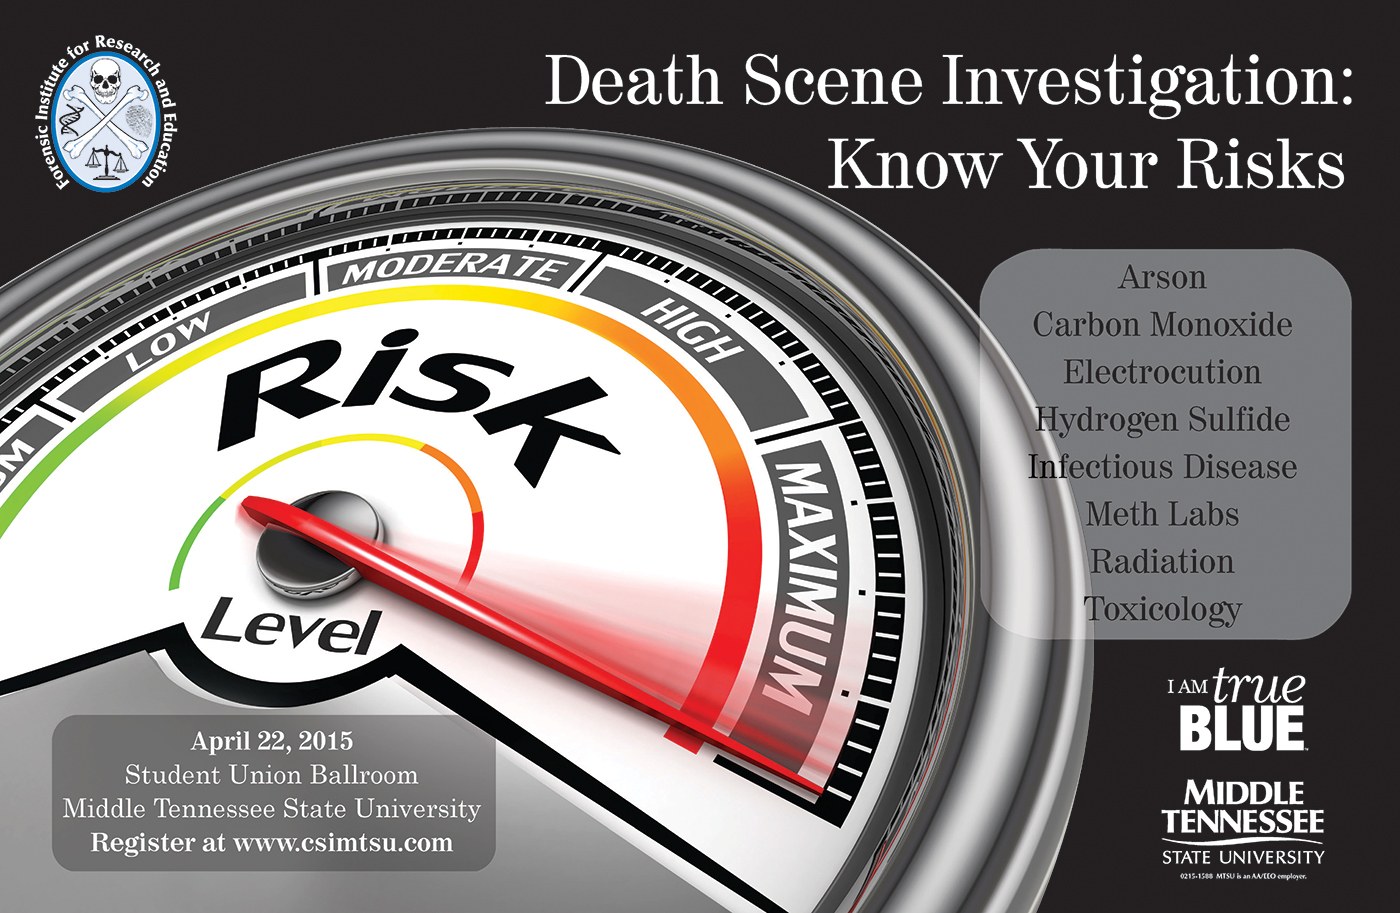 Death Scene Investigation Workshop in Murfreesboro